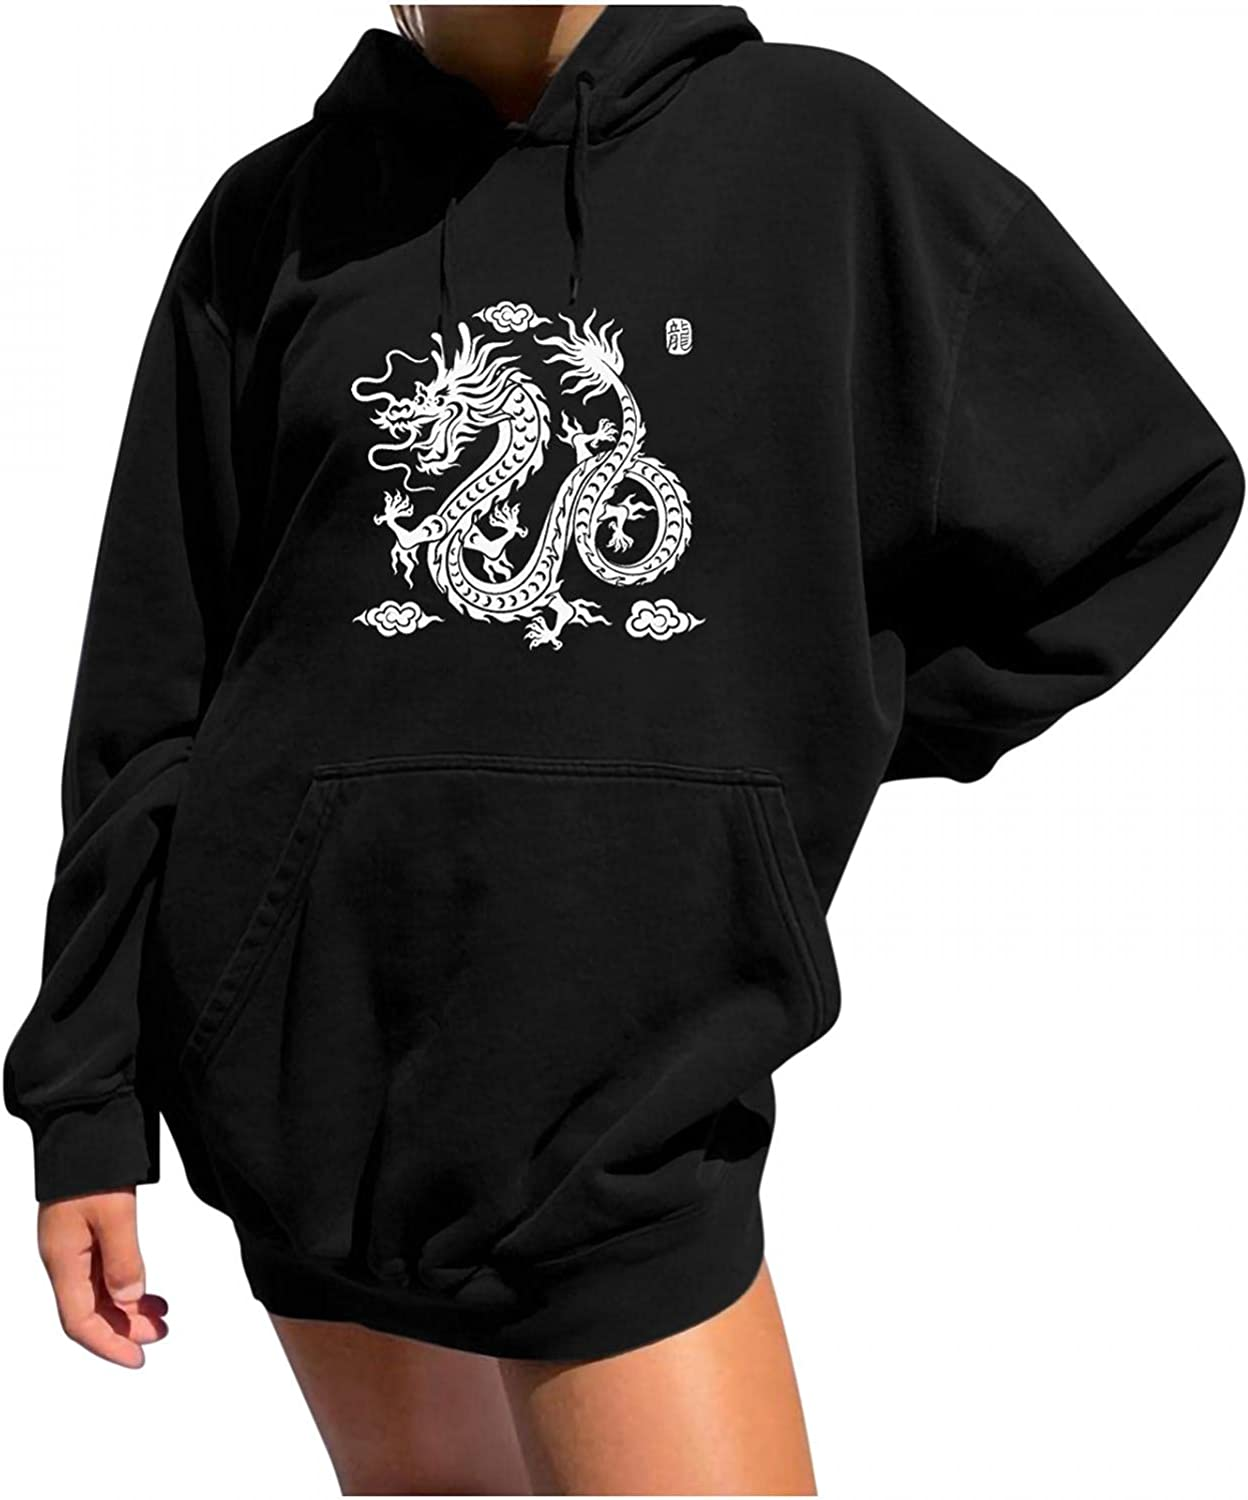 Womens Hoodies Pullover Oversized Fall Casual Sweatshirts Long Sleeve Blouse Retro Printed Tunic